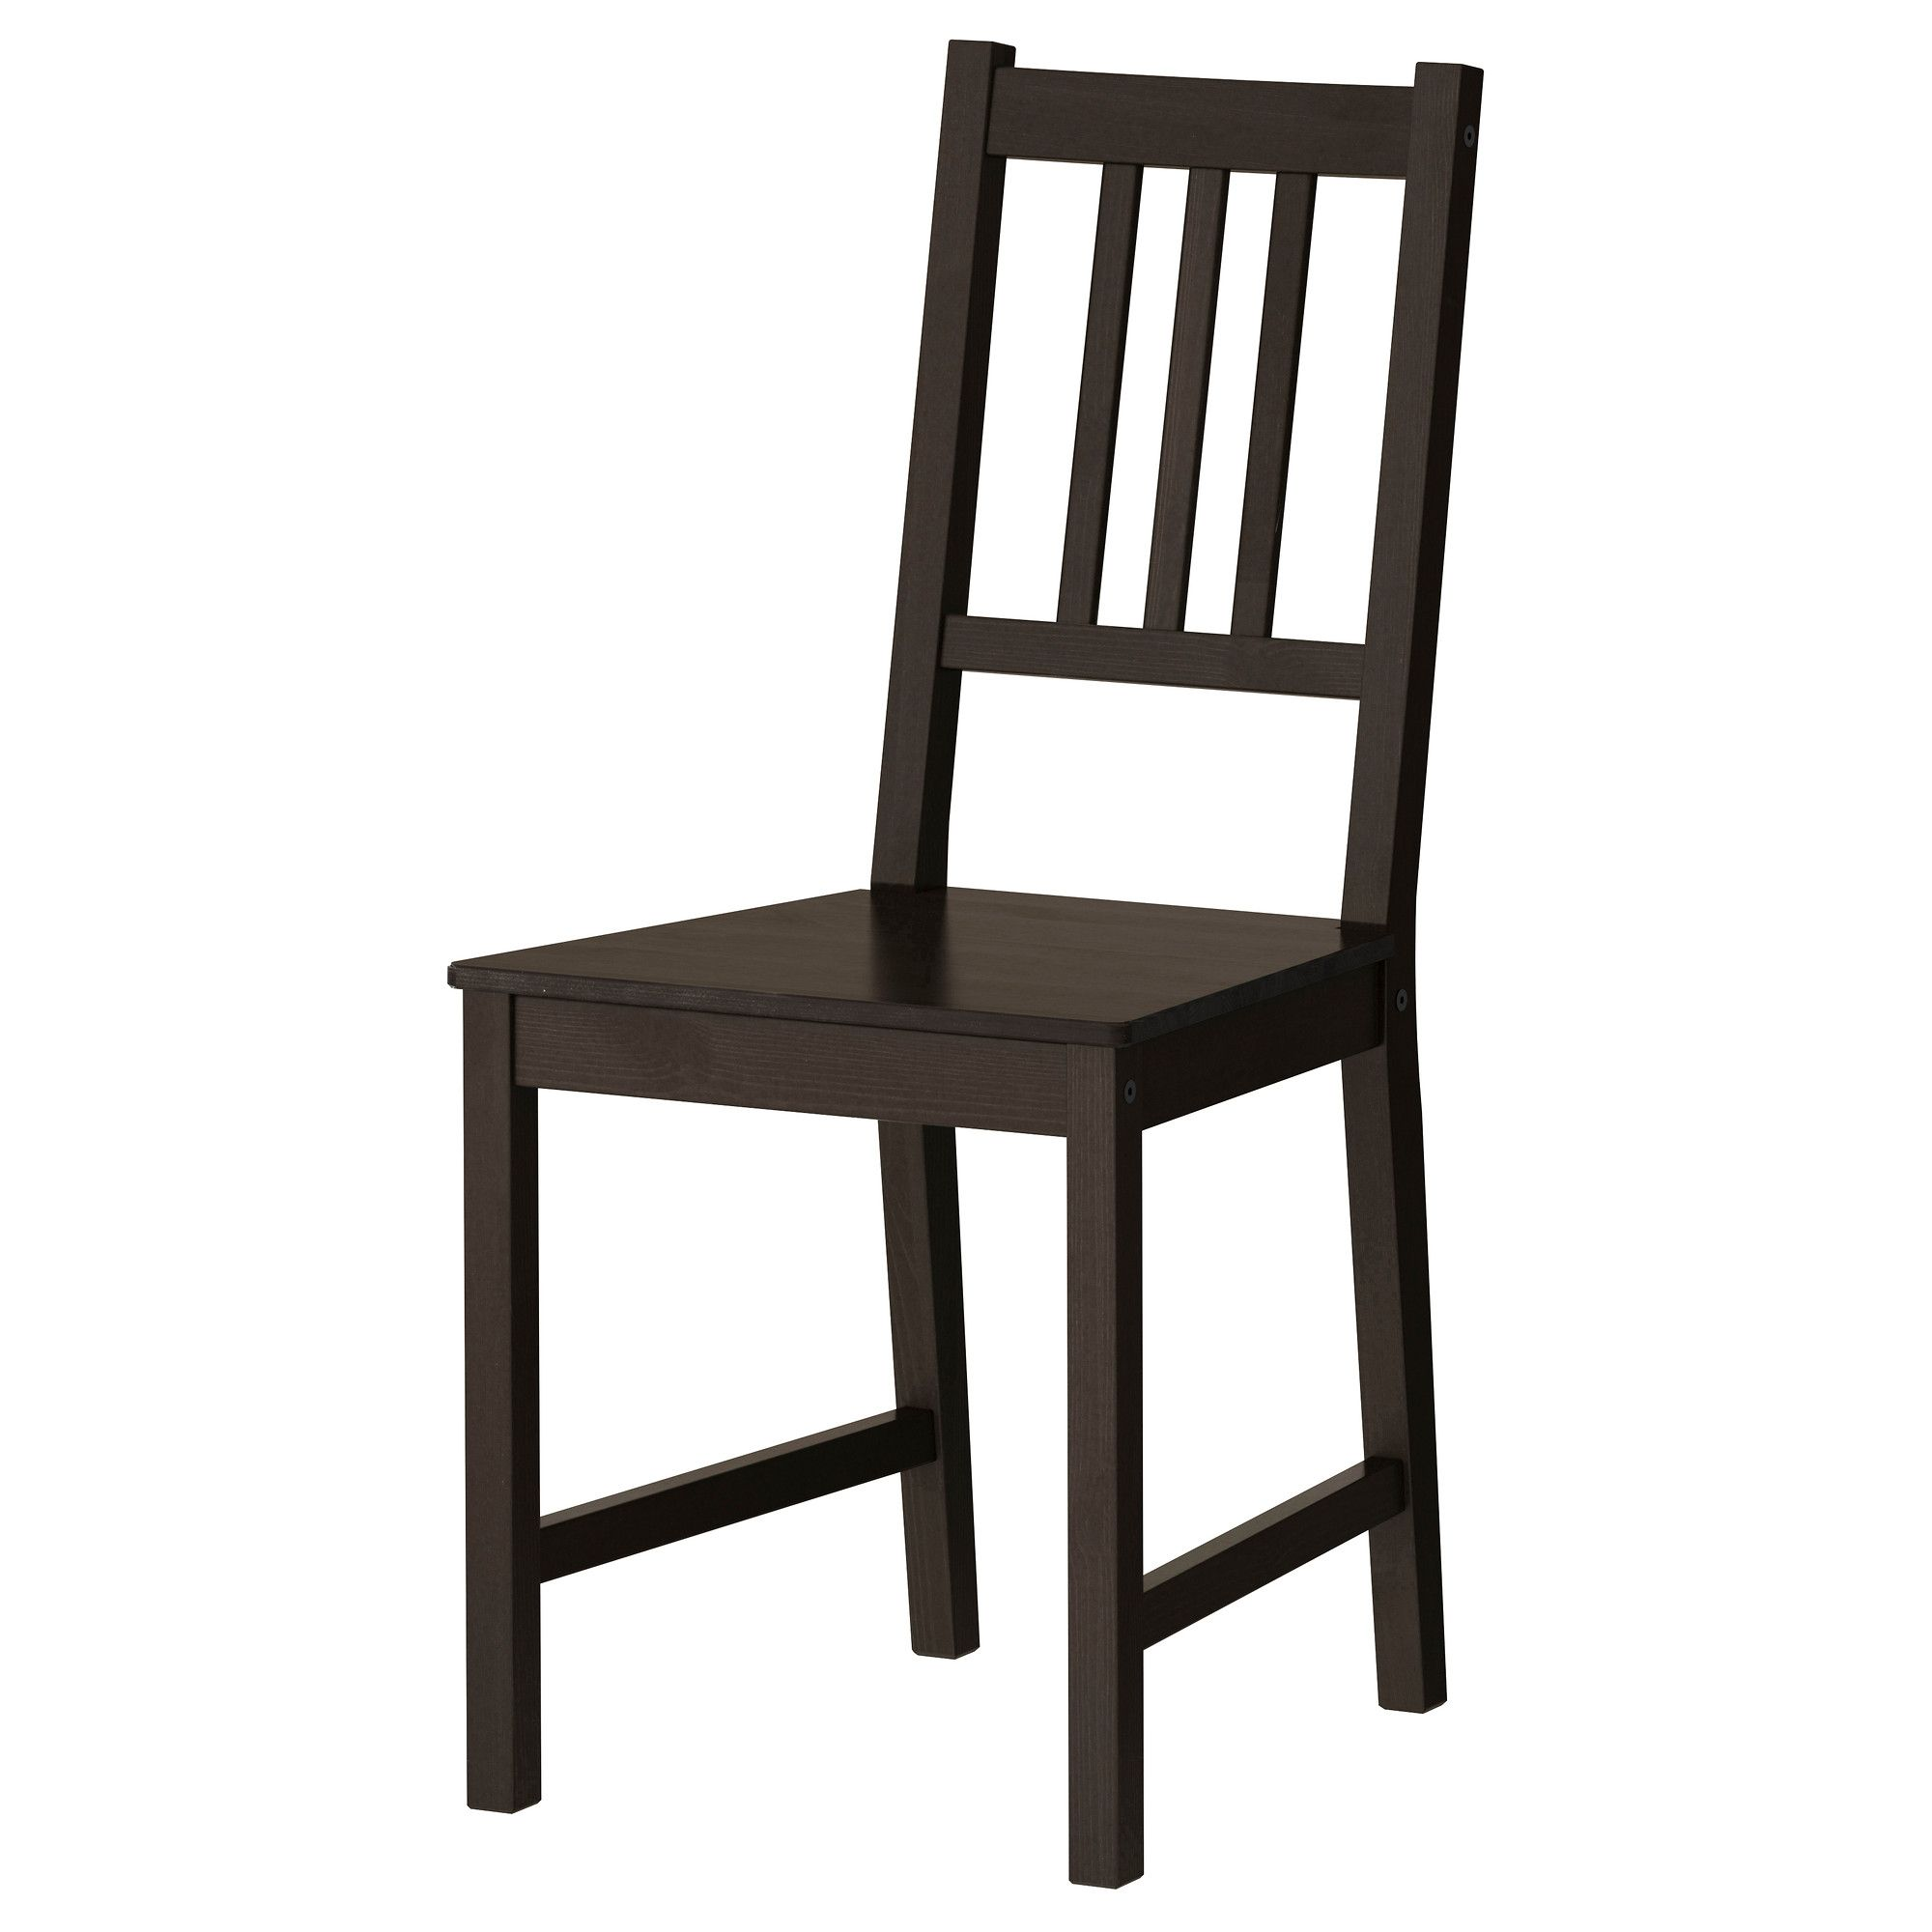 Sedia Junior Ikea Stefan Chair Brown Black Dining Room Ikea Dining Chair Ikea